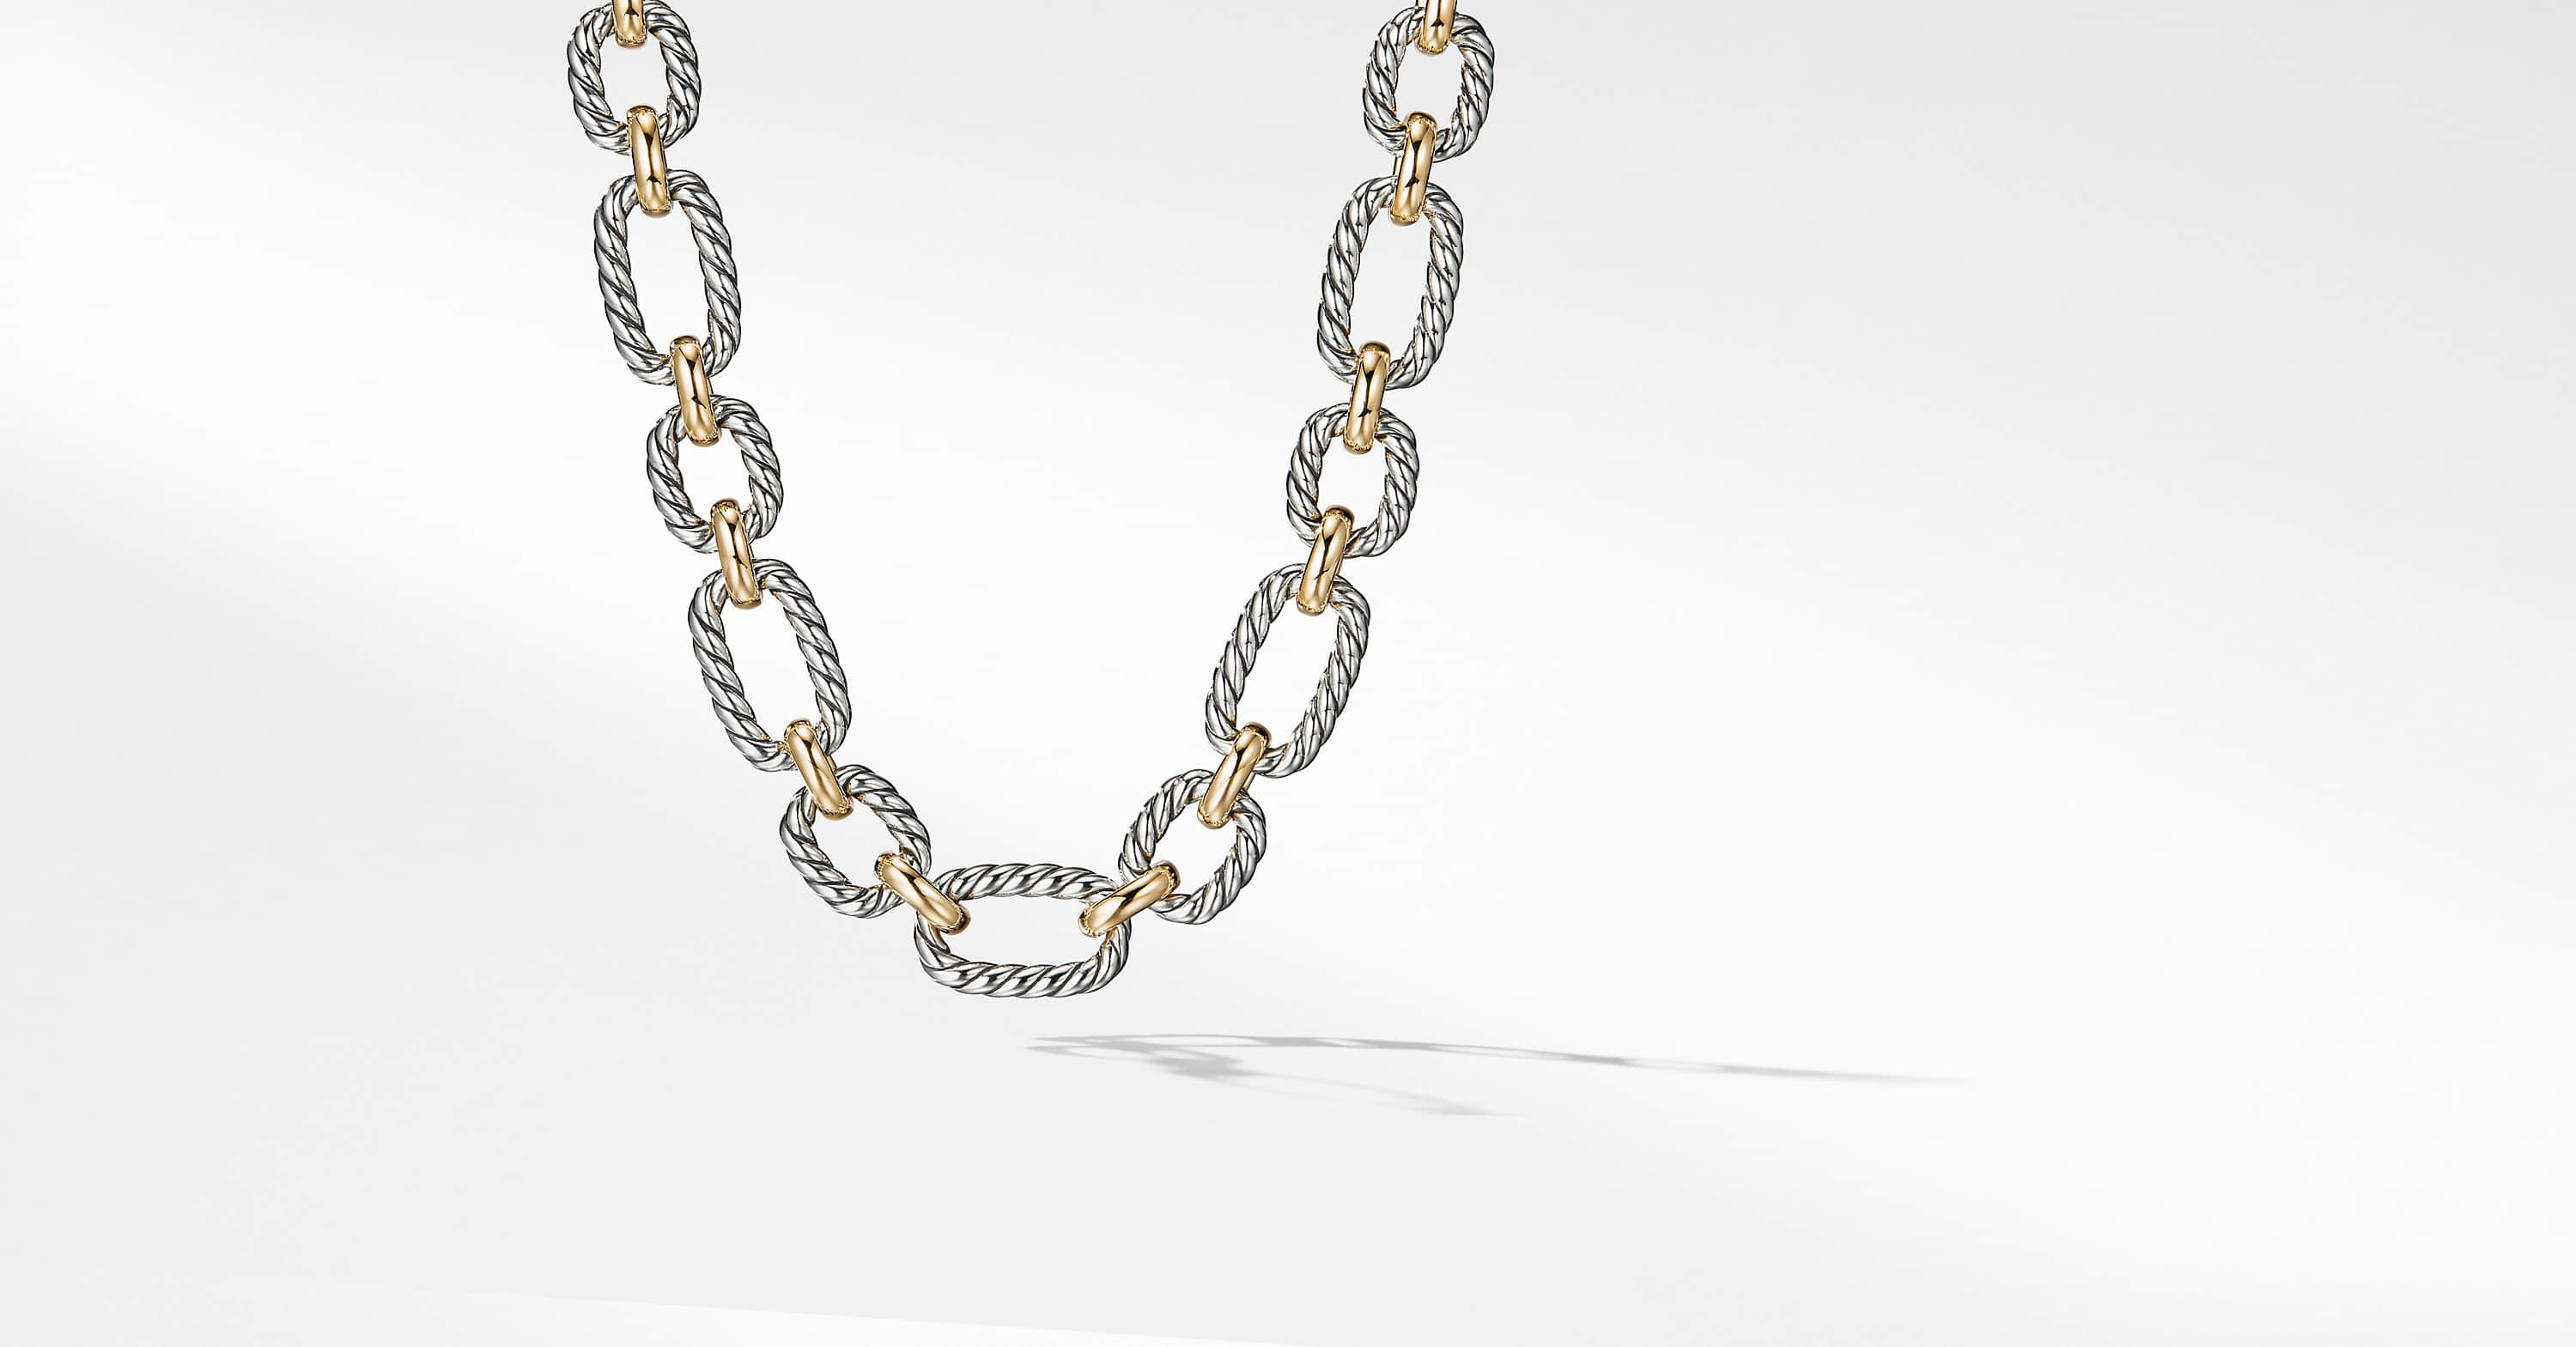 Cushion Link Necklace with 18K Gold, 12.5mm